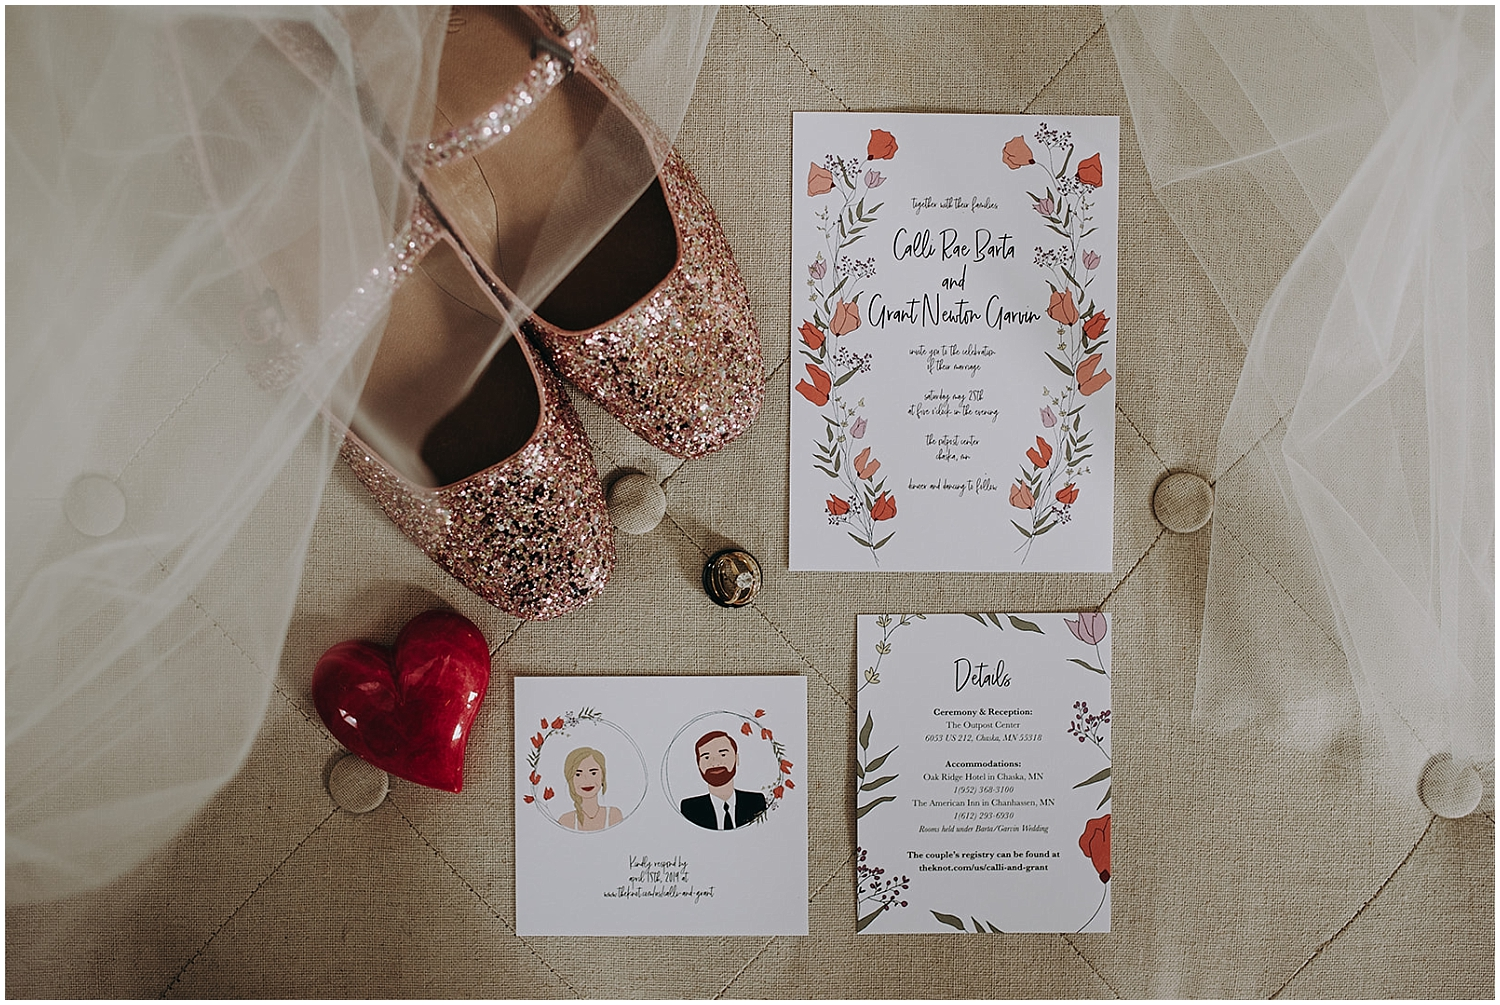 Wedding shoes and wedding invitation